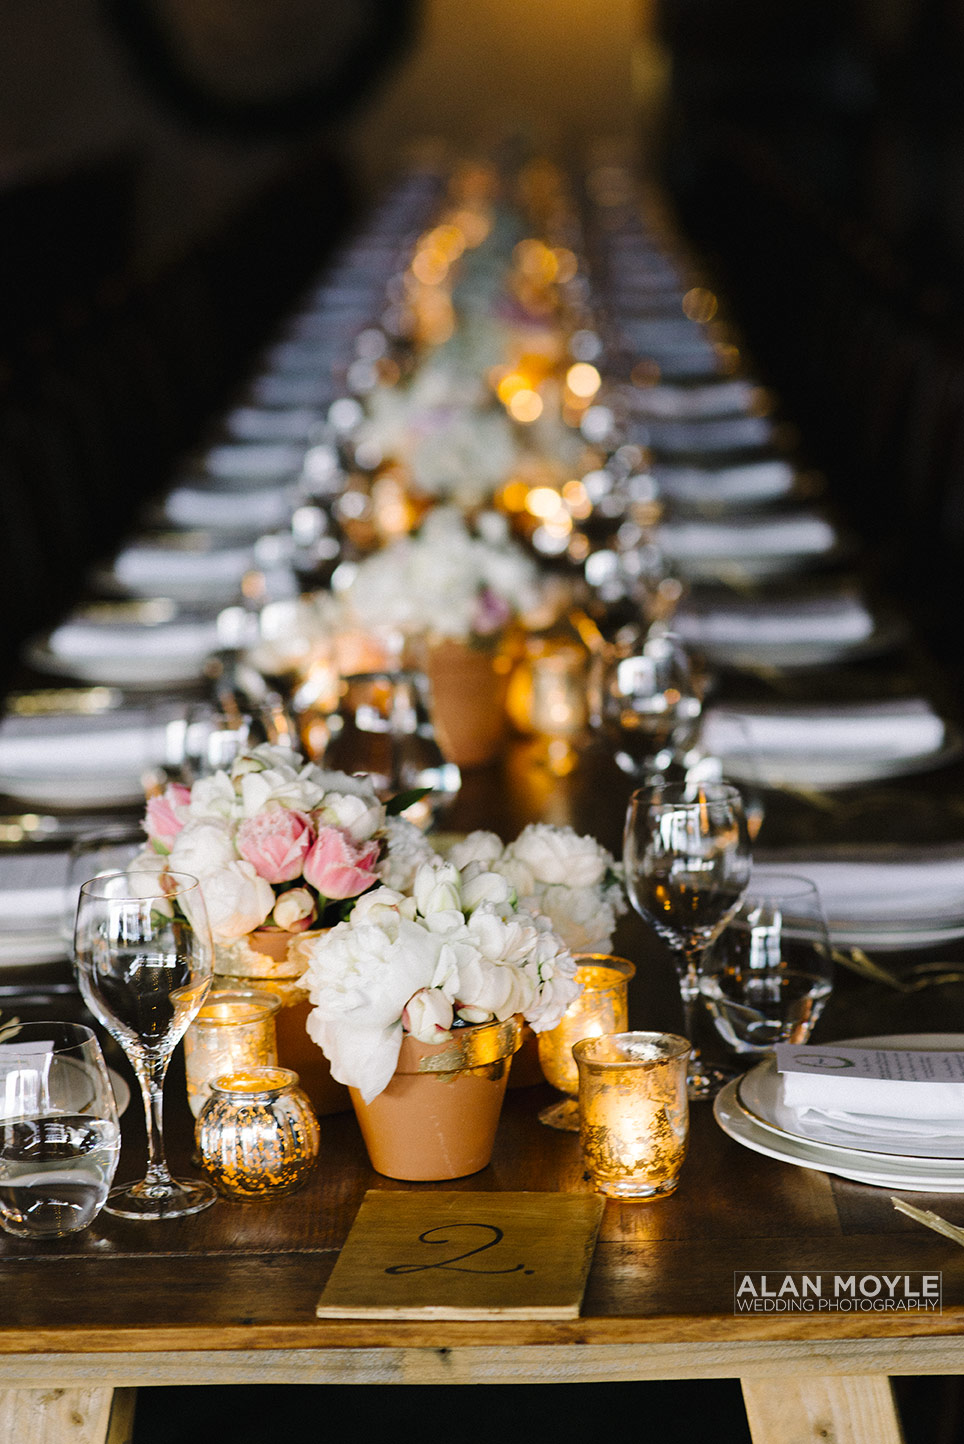 1405austin-278weddings_of_desire_melbourne_styling_event_geelong_alan_moyle_vineyard_winery_caligraphy_laura_sprout_hire_bayside.jpg